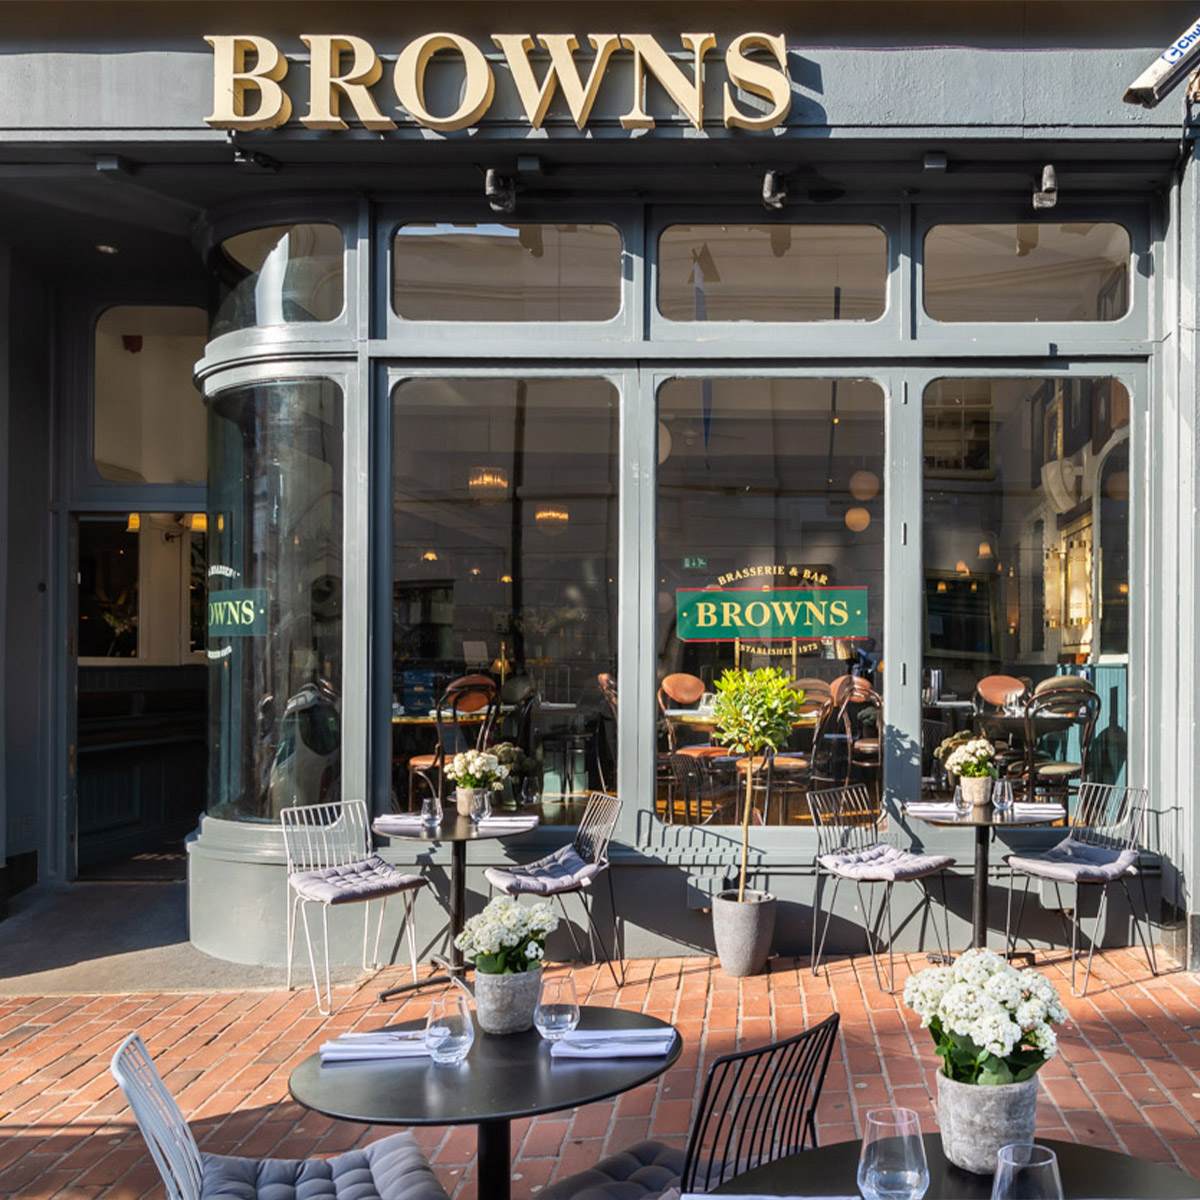 Browns Brasserie & Bar Brighton